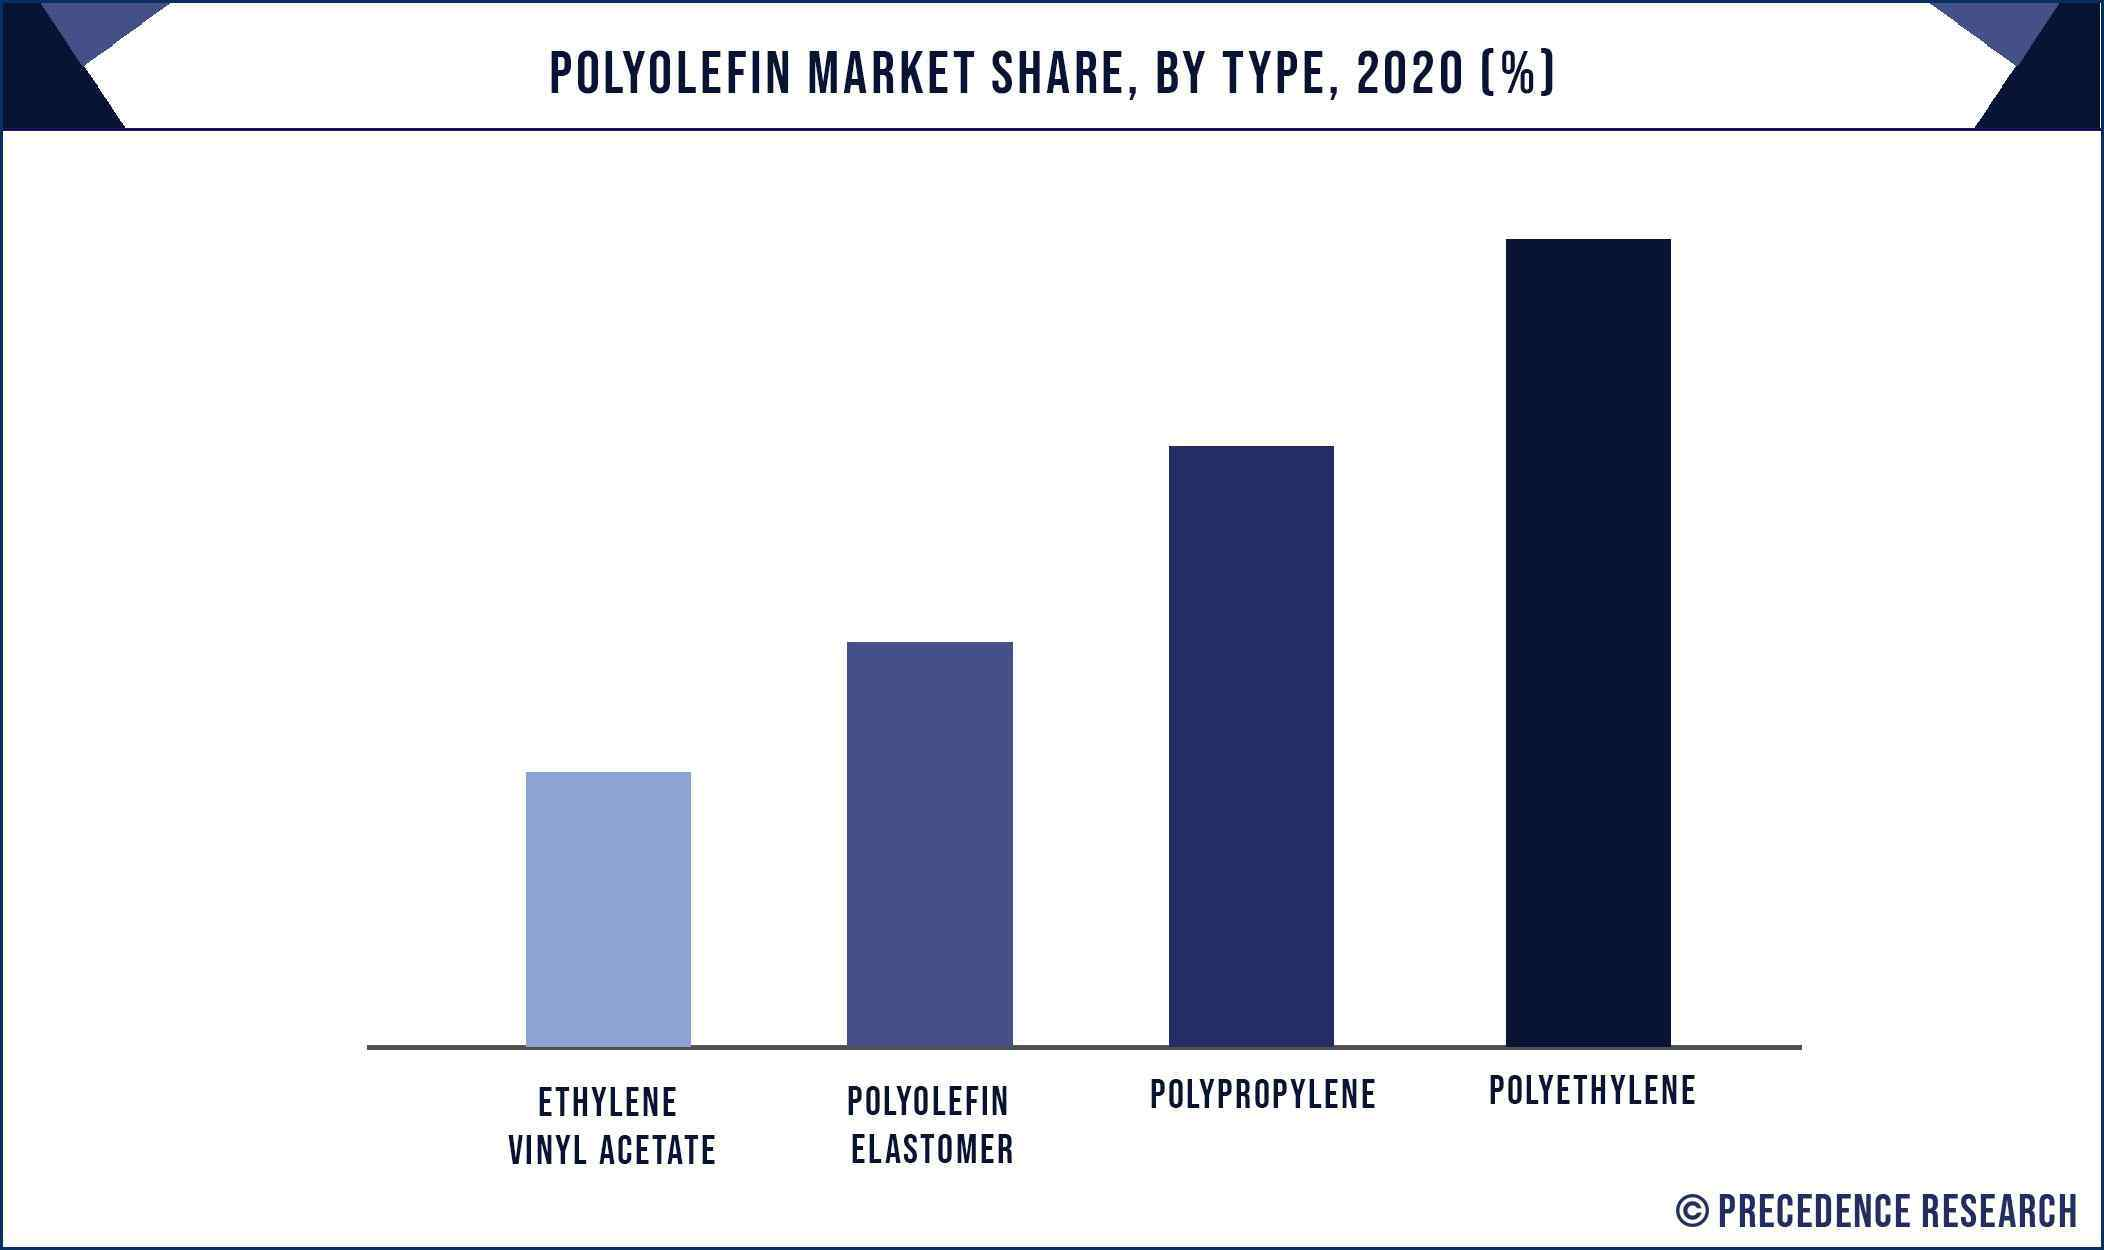 Polyolefin Market Share, By Type, 2020 (%)